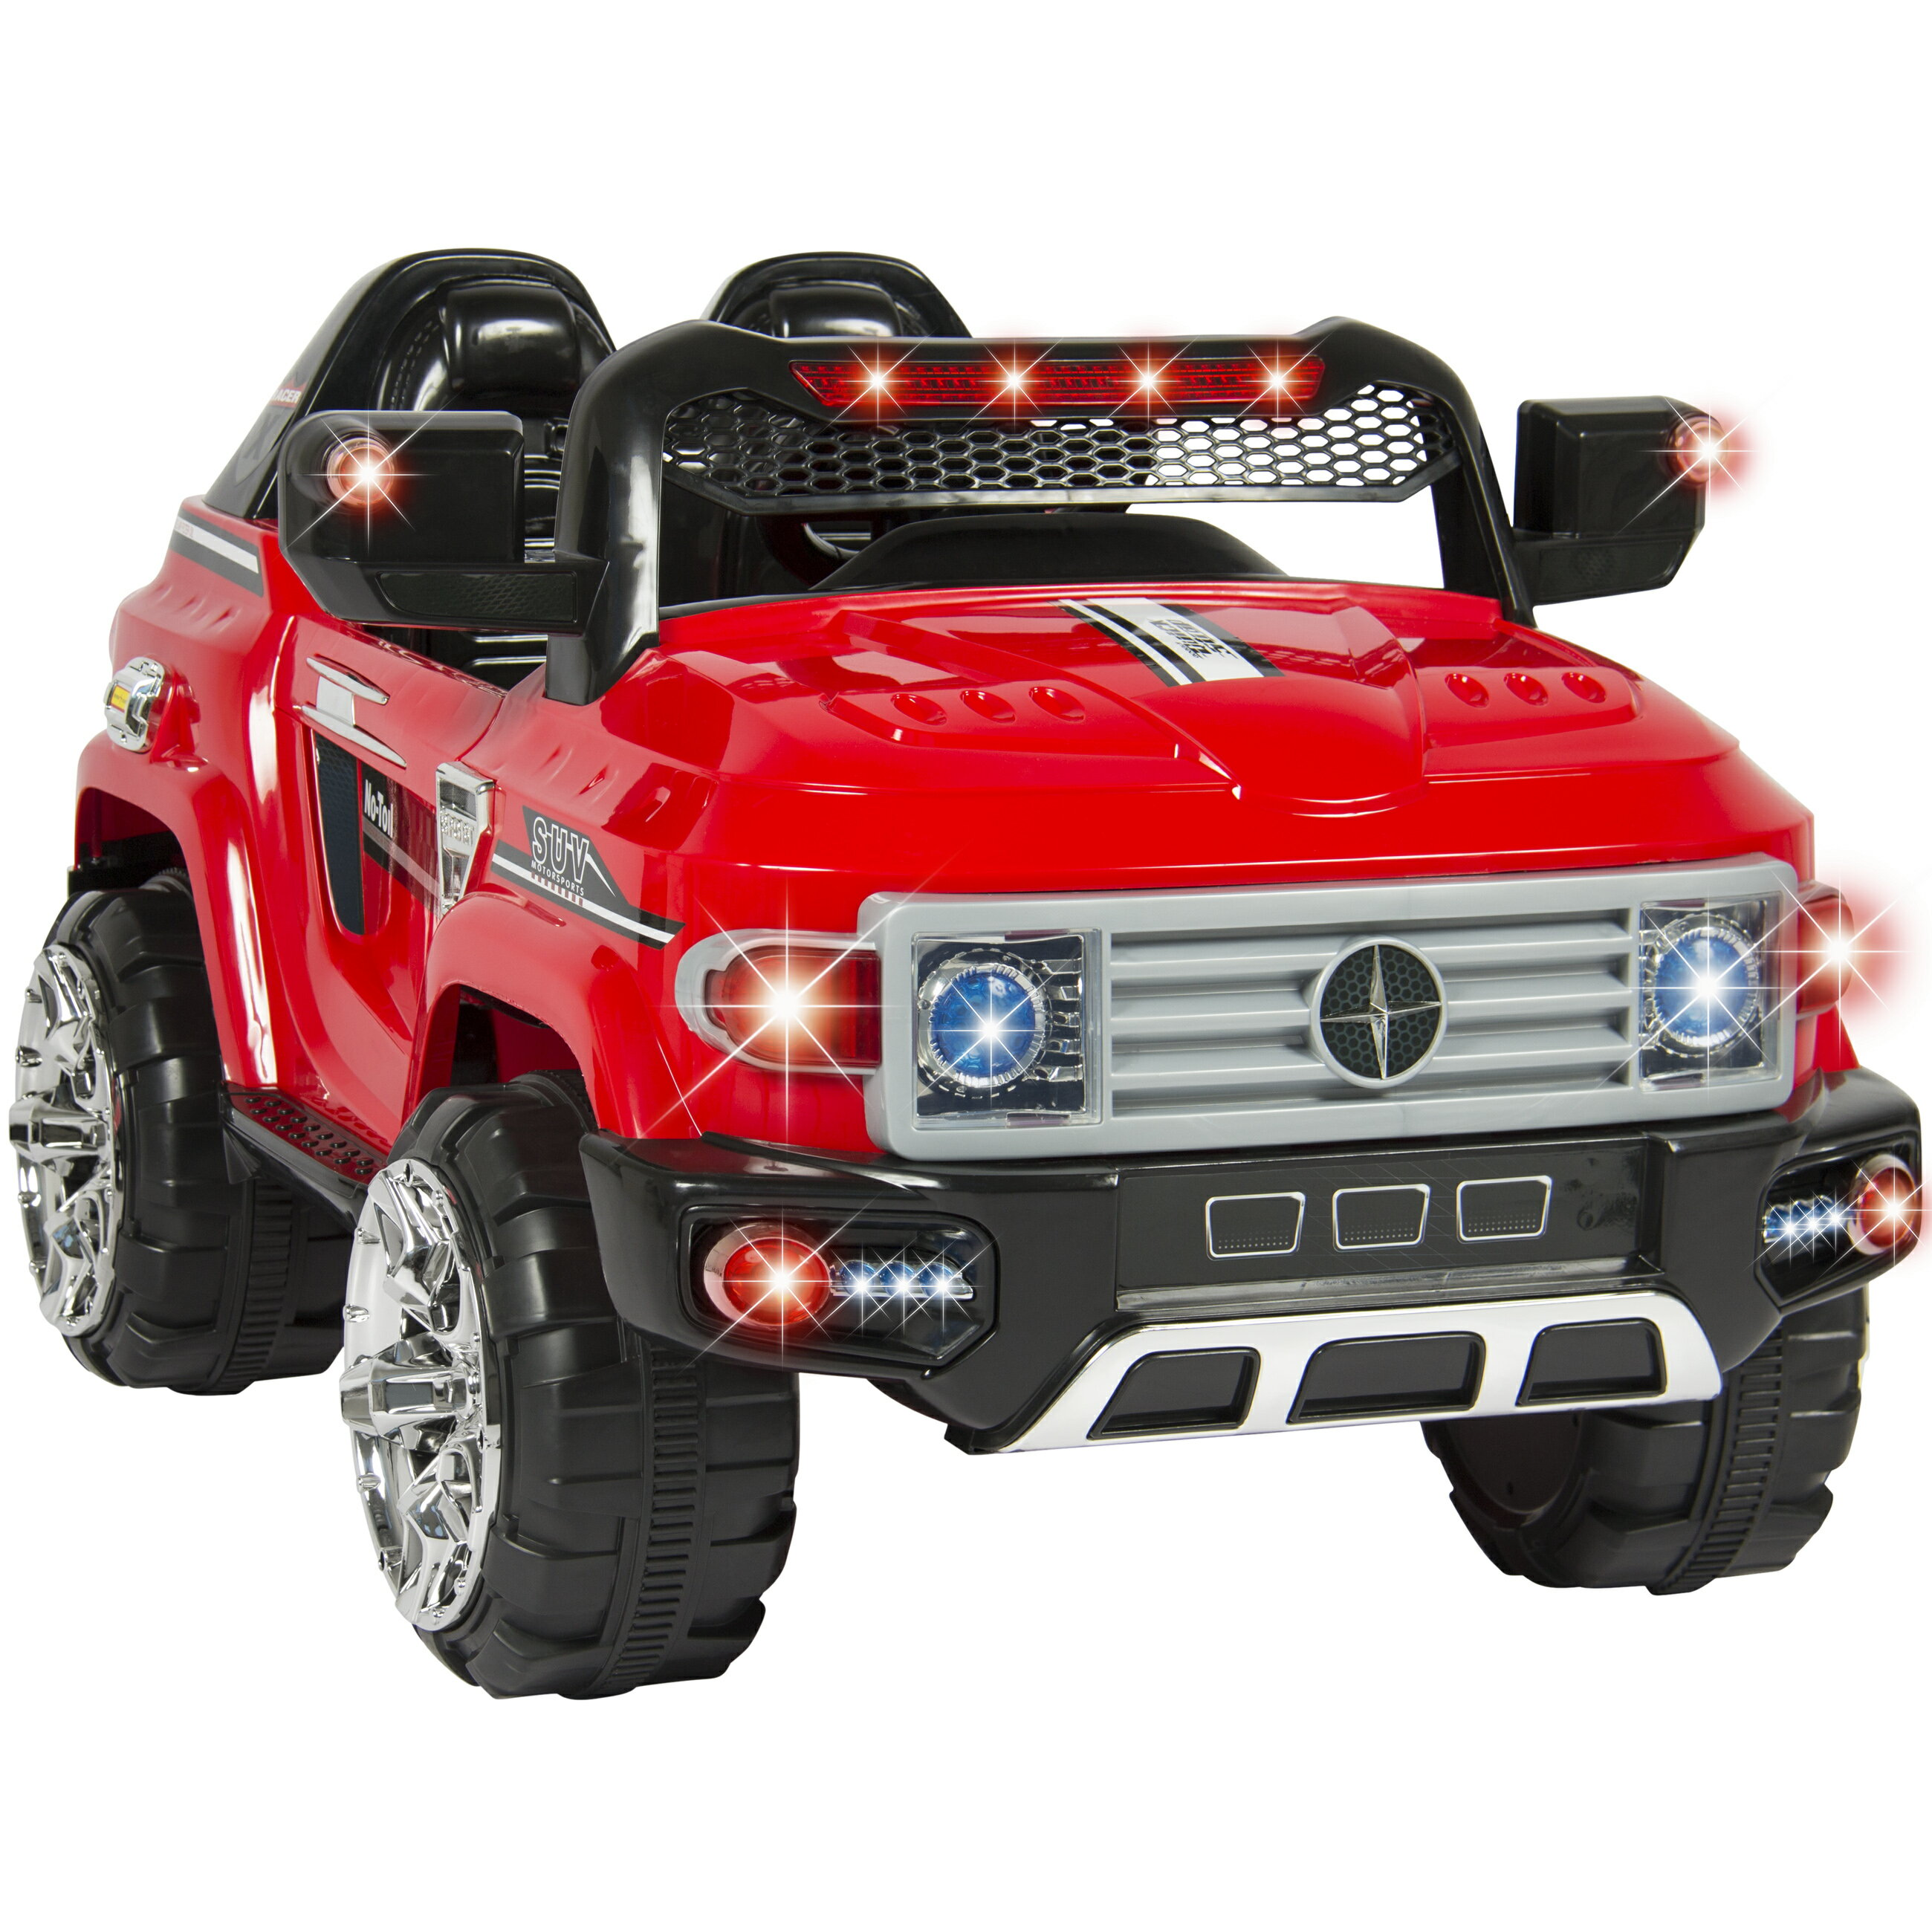 Best Choice Products 12V Kids Remote Control Truck SUV Ride-On Car w/ 2  Speeds, LED Lights, MP3, Parent Control - Red